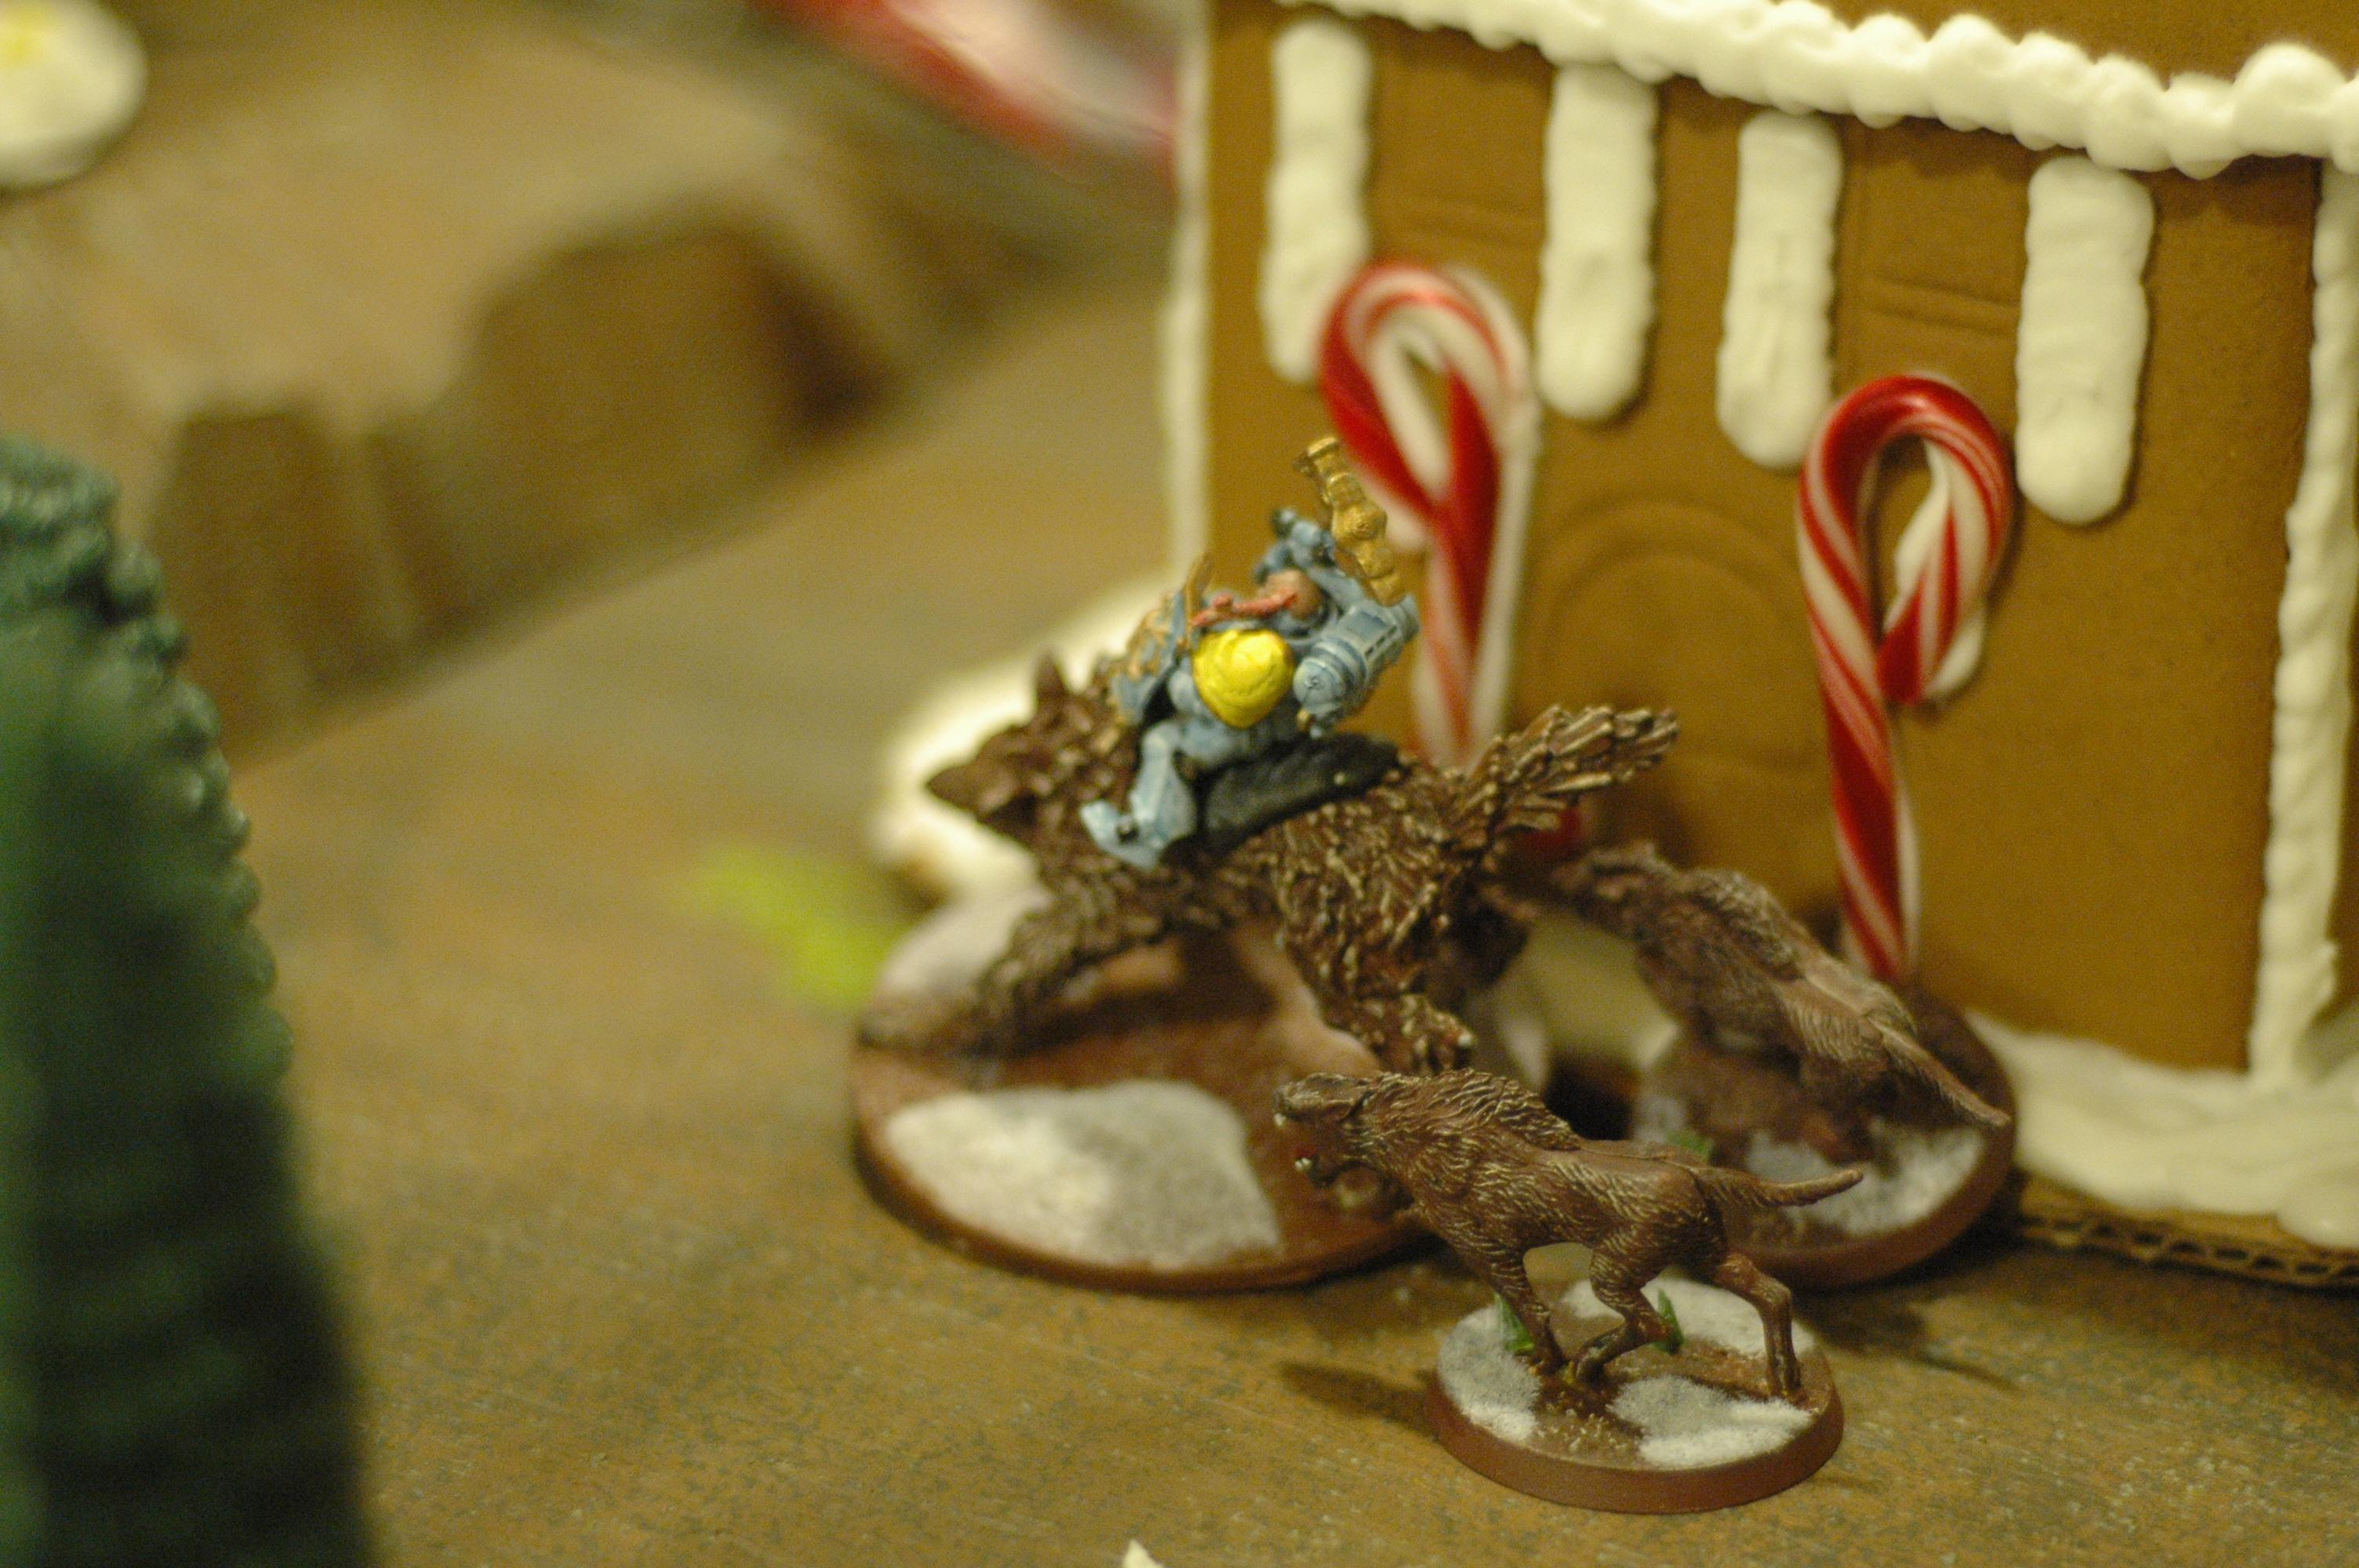 Battle Report, Buildings, Christmas, Game Table, Terrain